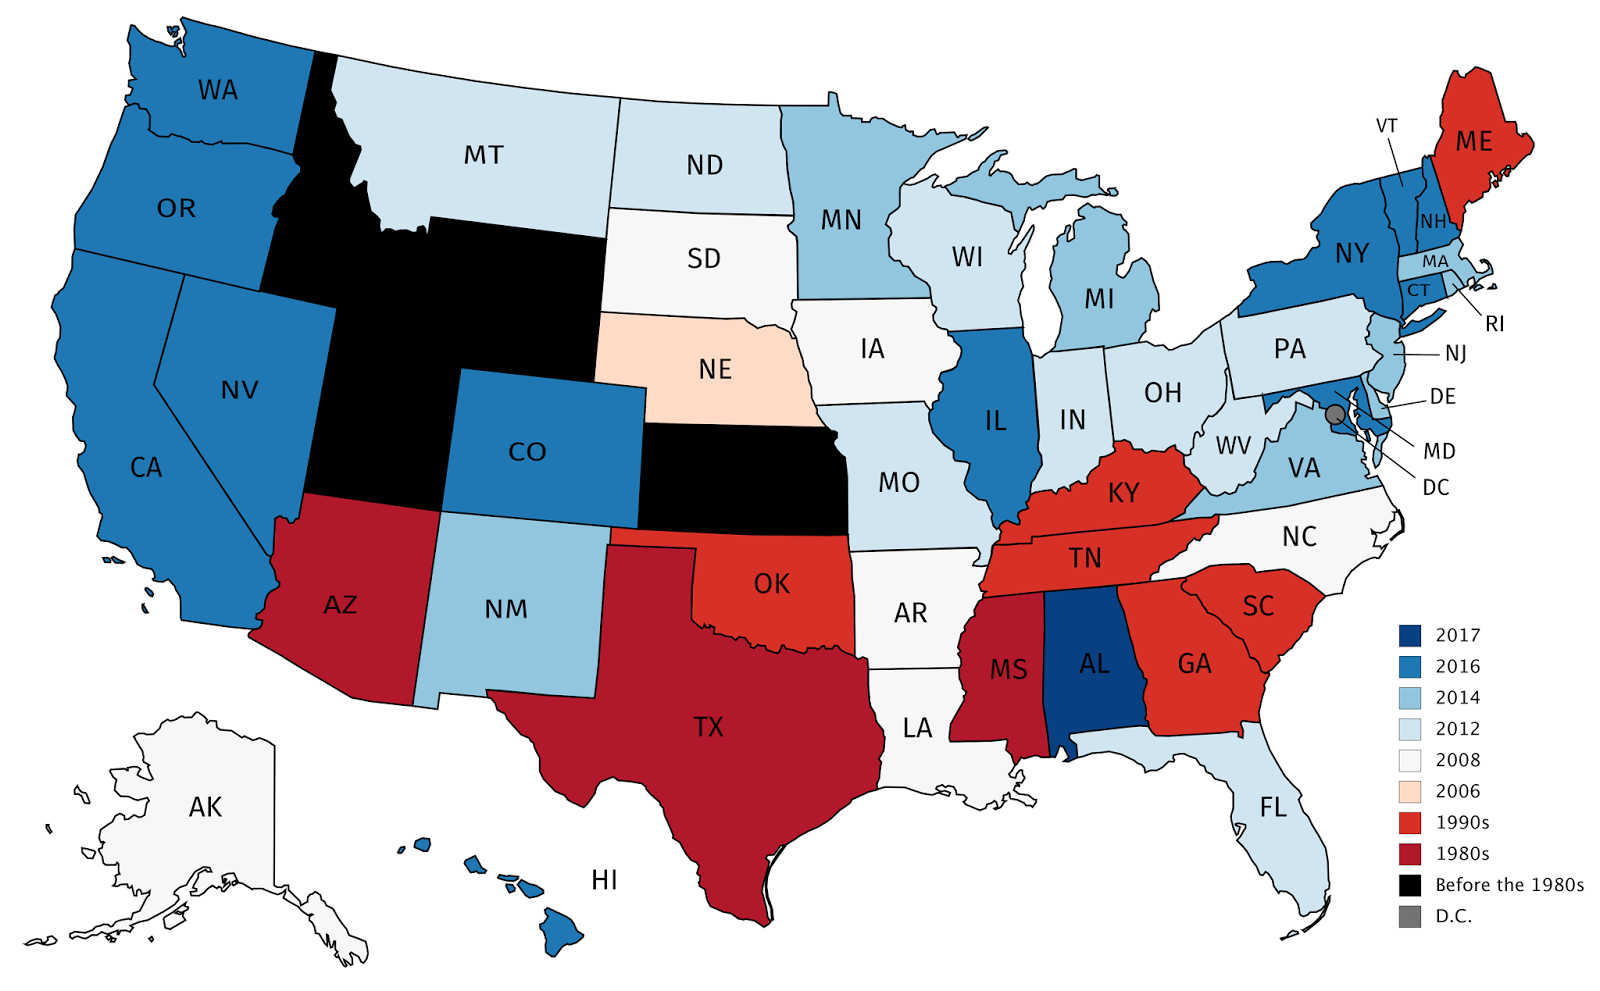 The last time a stated voted for a Democratic candidate for ... Map Of Democratic States on map of usa with electoral votes, red and blue states 2012, democratic blue states 2012, map of usa in thyroid cancer, republican states 2012, map of democrats and republicans in congress 2013, map of germany states 2012, presidential election battleground states 2012,